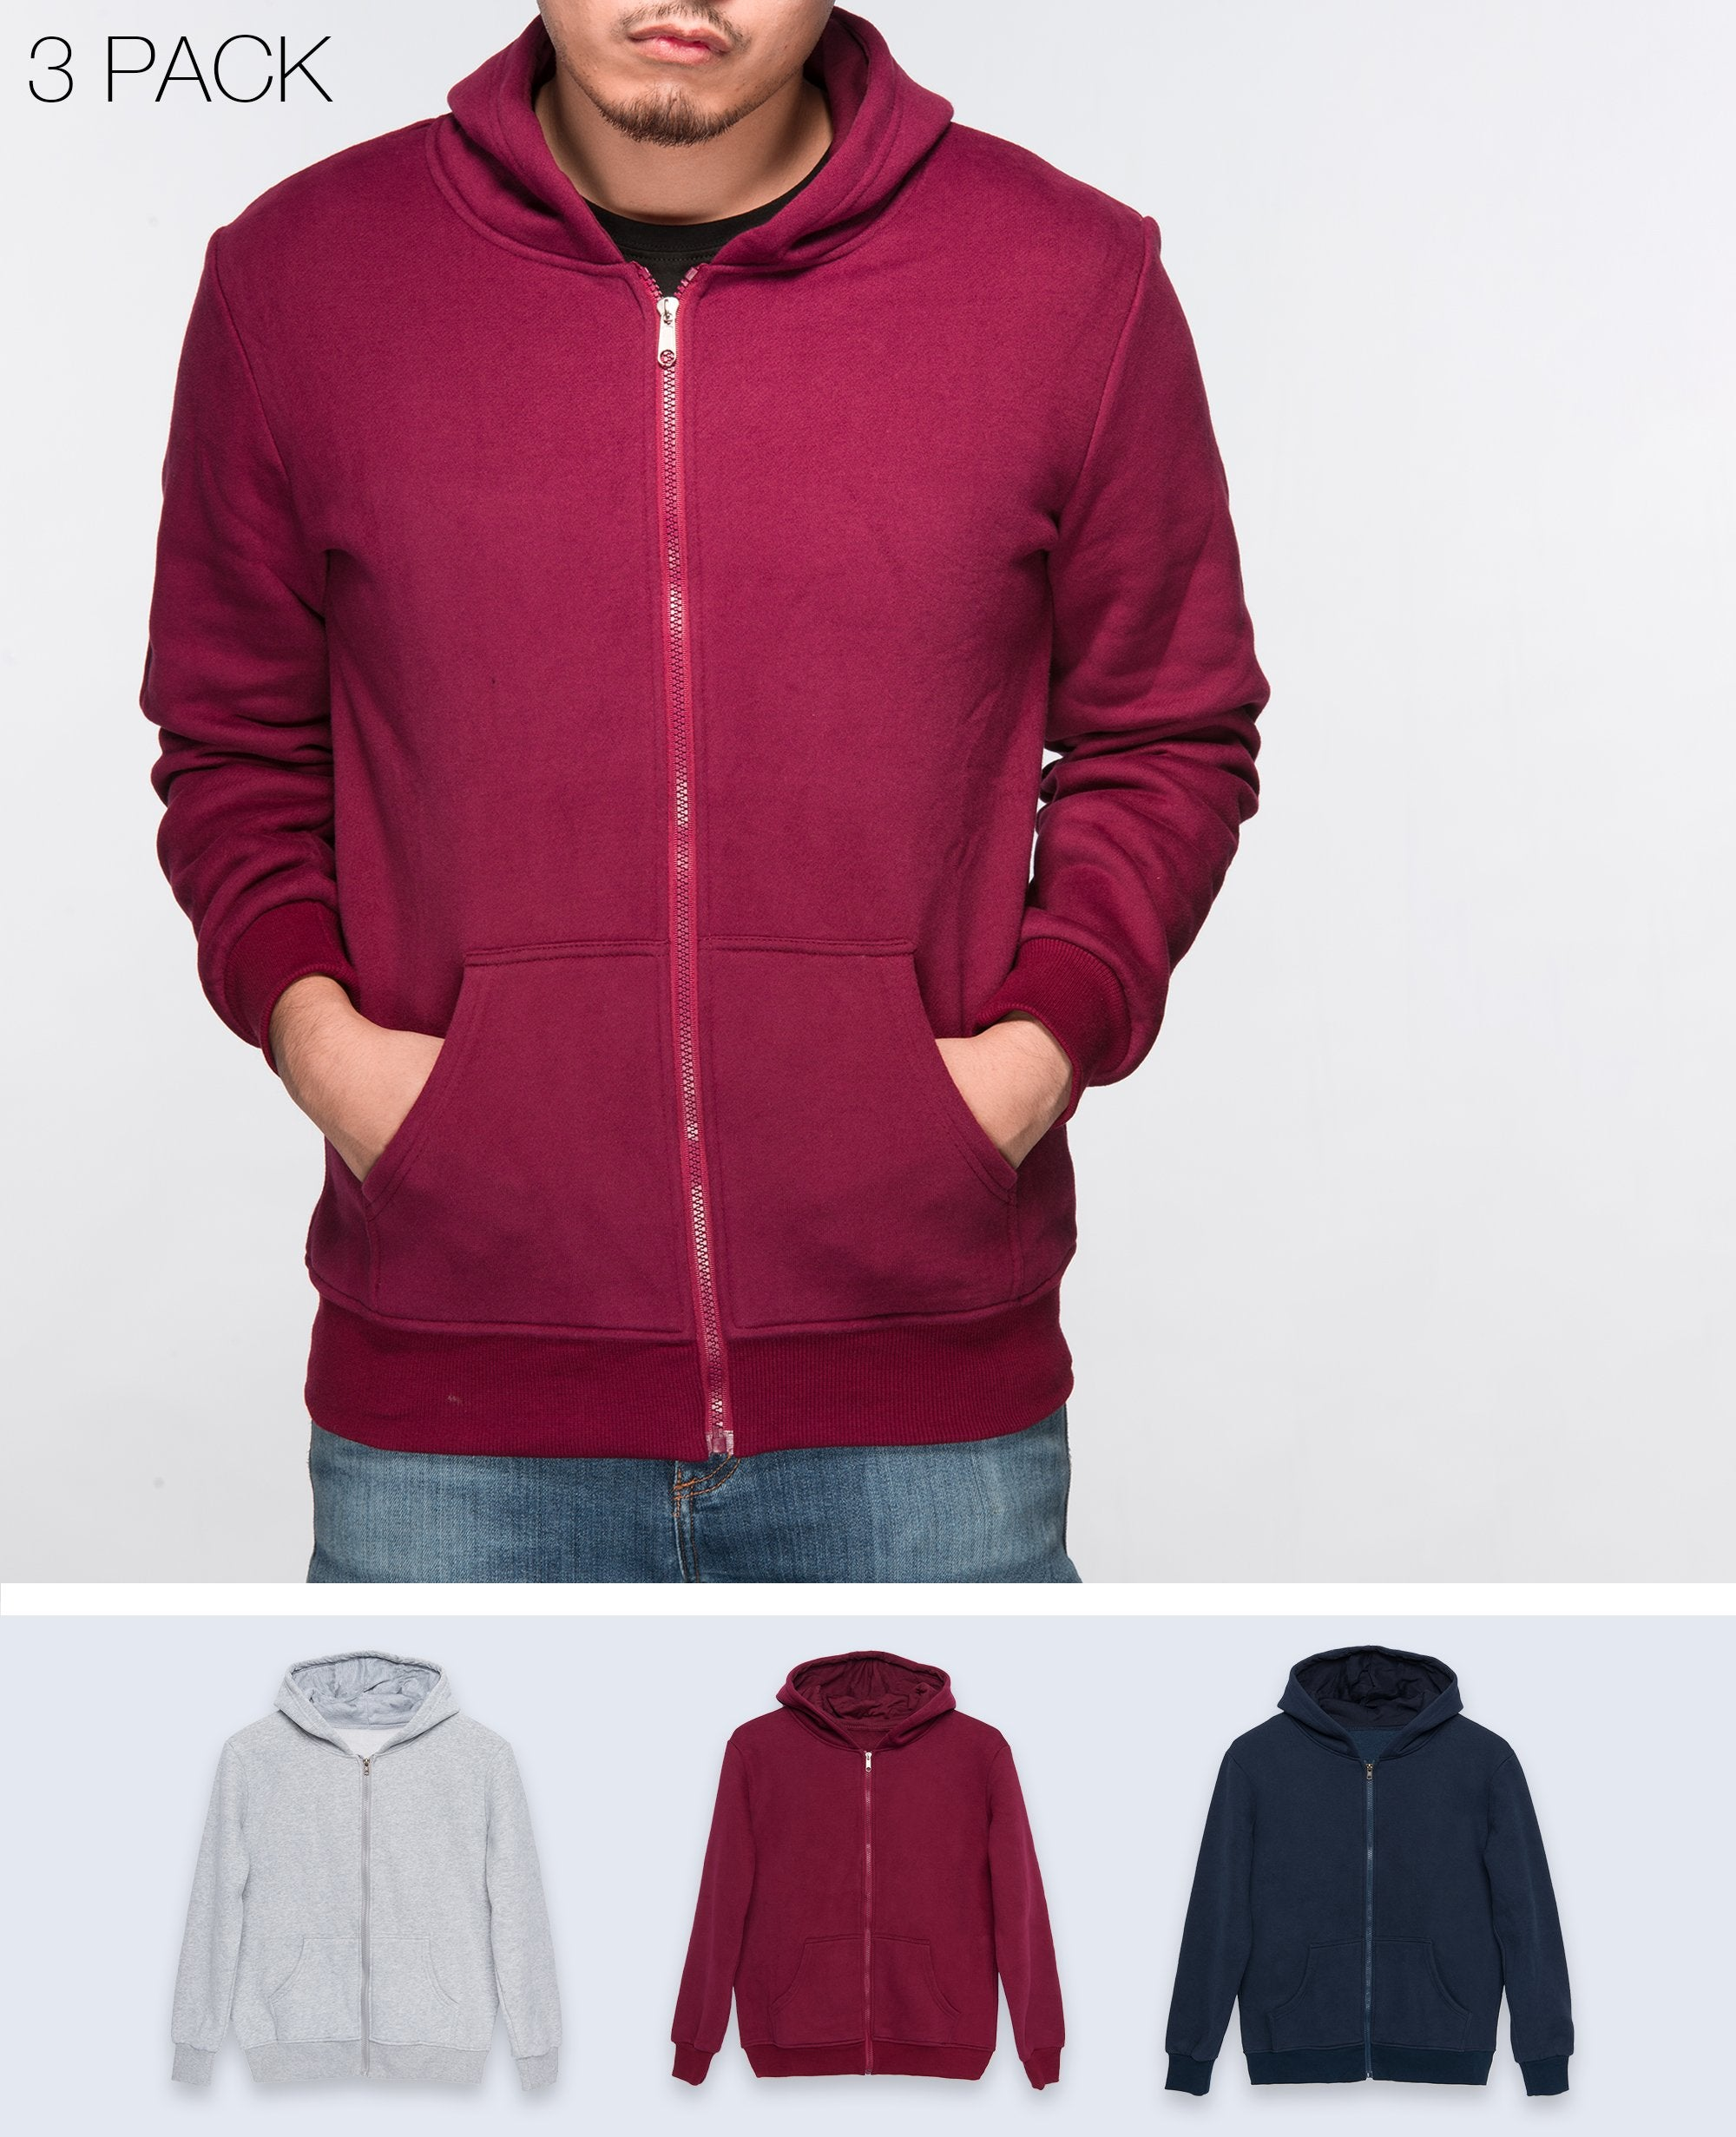 Unisex Basic Hoodies in Navy / Maroon / Gray 3 pack - Hoodies - BRANMA - BRANMA